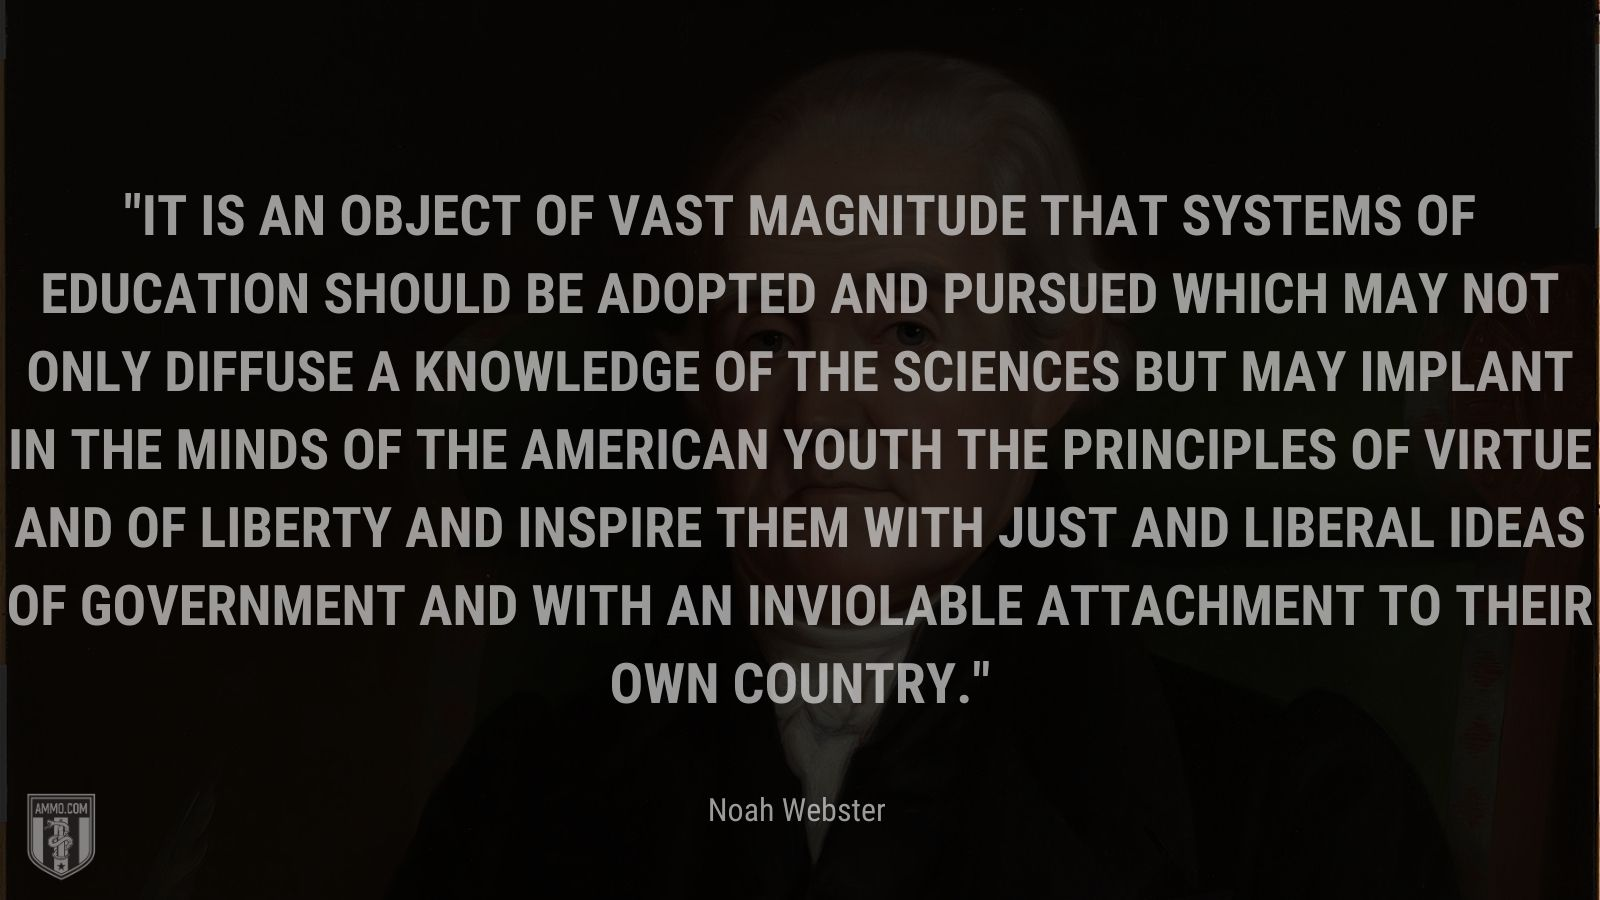 """""""It is an object of vast magnitude that systems of education should be adopted and pursued which may not only diffuse a knowledge of the sciences but may implant in the minds of the American youth the principles of virtue and of liberty and inspire them with just and liberal ideas of government and with an inviolable attachment to their own country."""" - Noah Webster"""